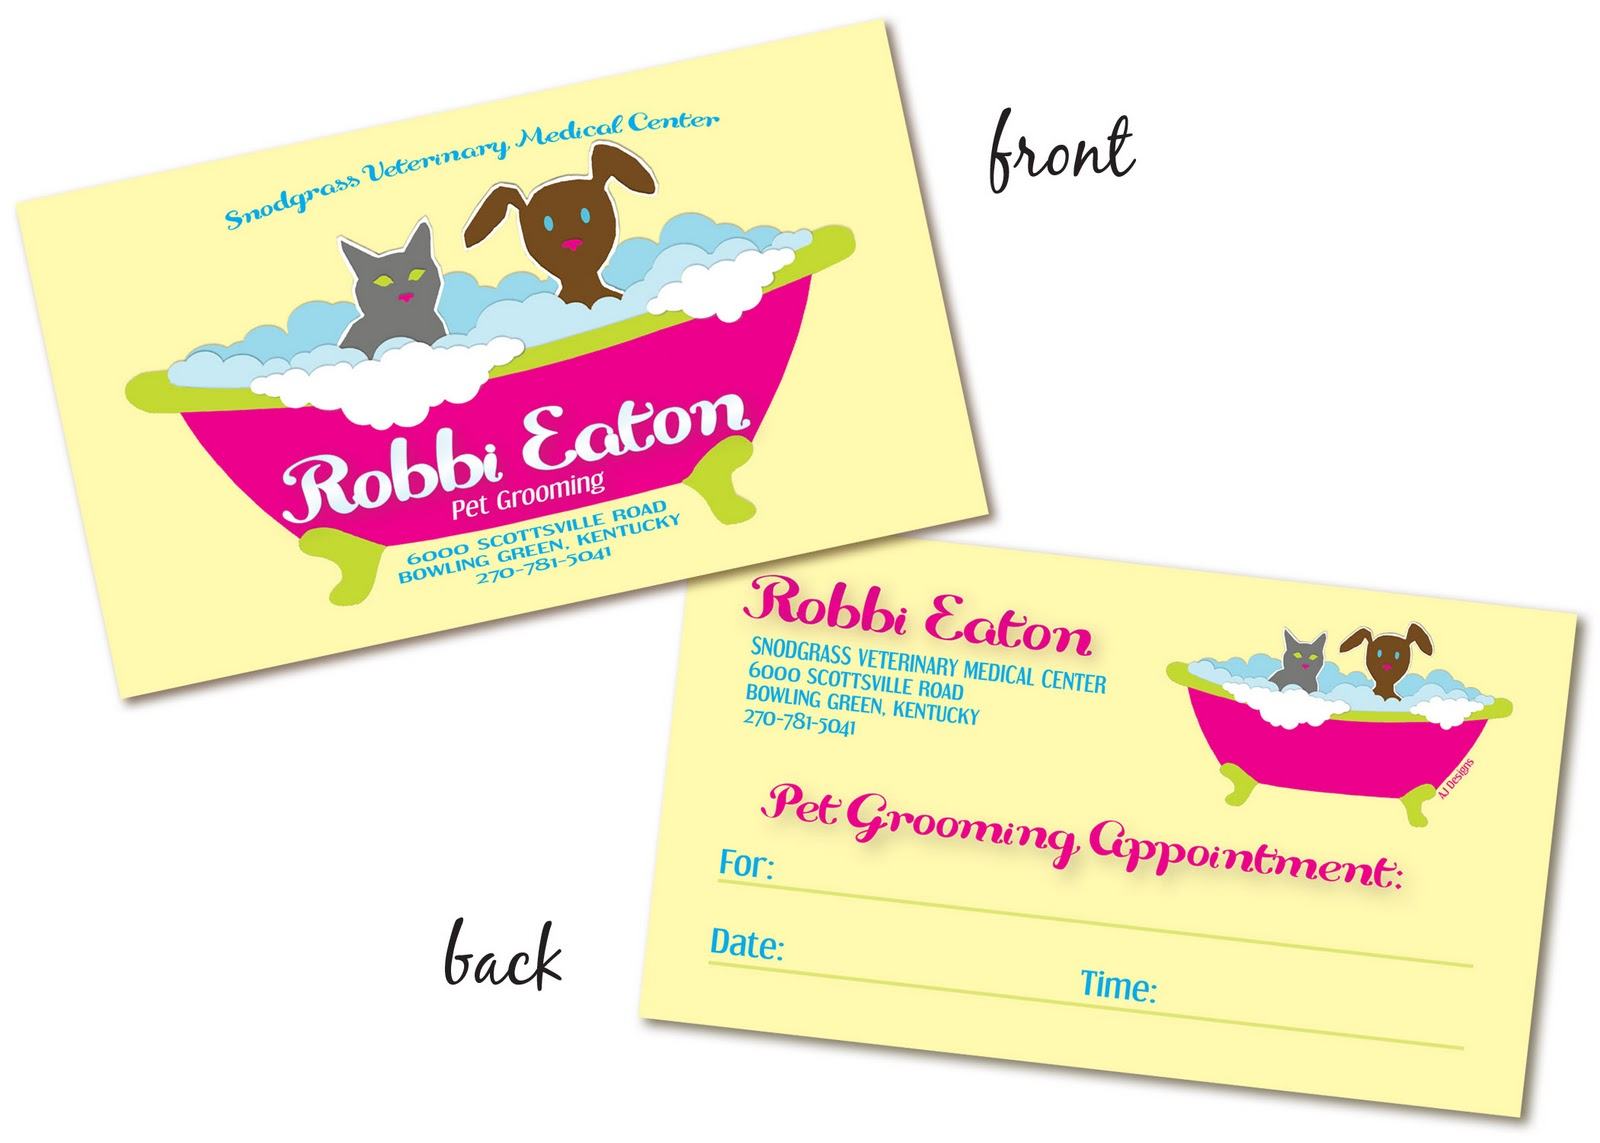 Aj robbis pet grooming business cards robbis pet grooming business cards anyone need dog or cat grooming see my girl robbi robinson eaton at snodgrass in bowling green ky colourmoves